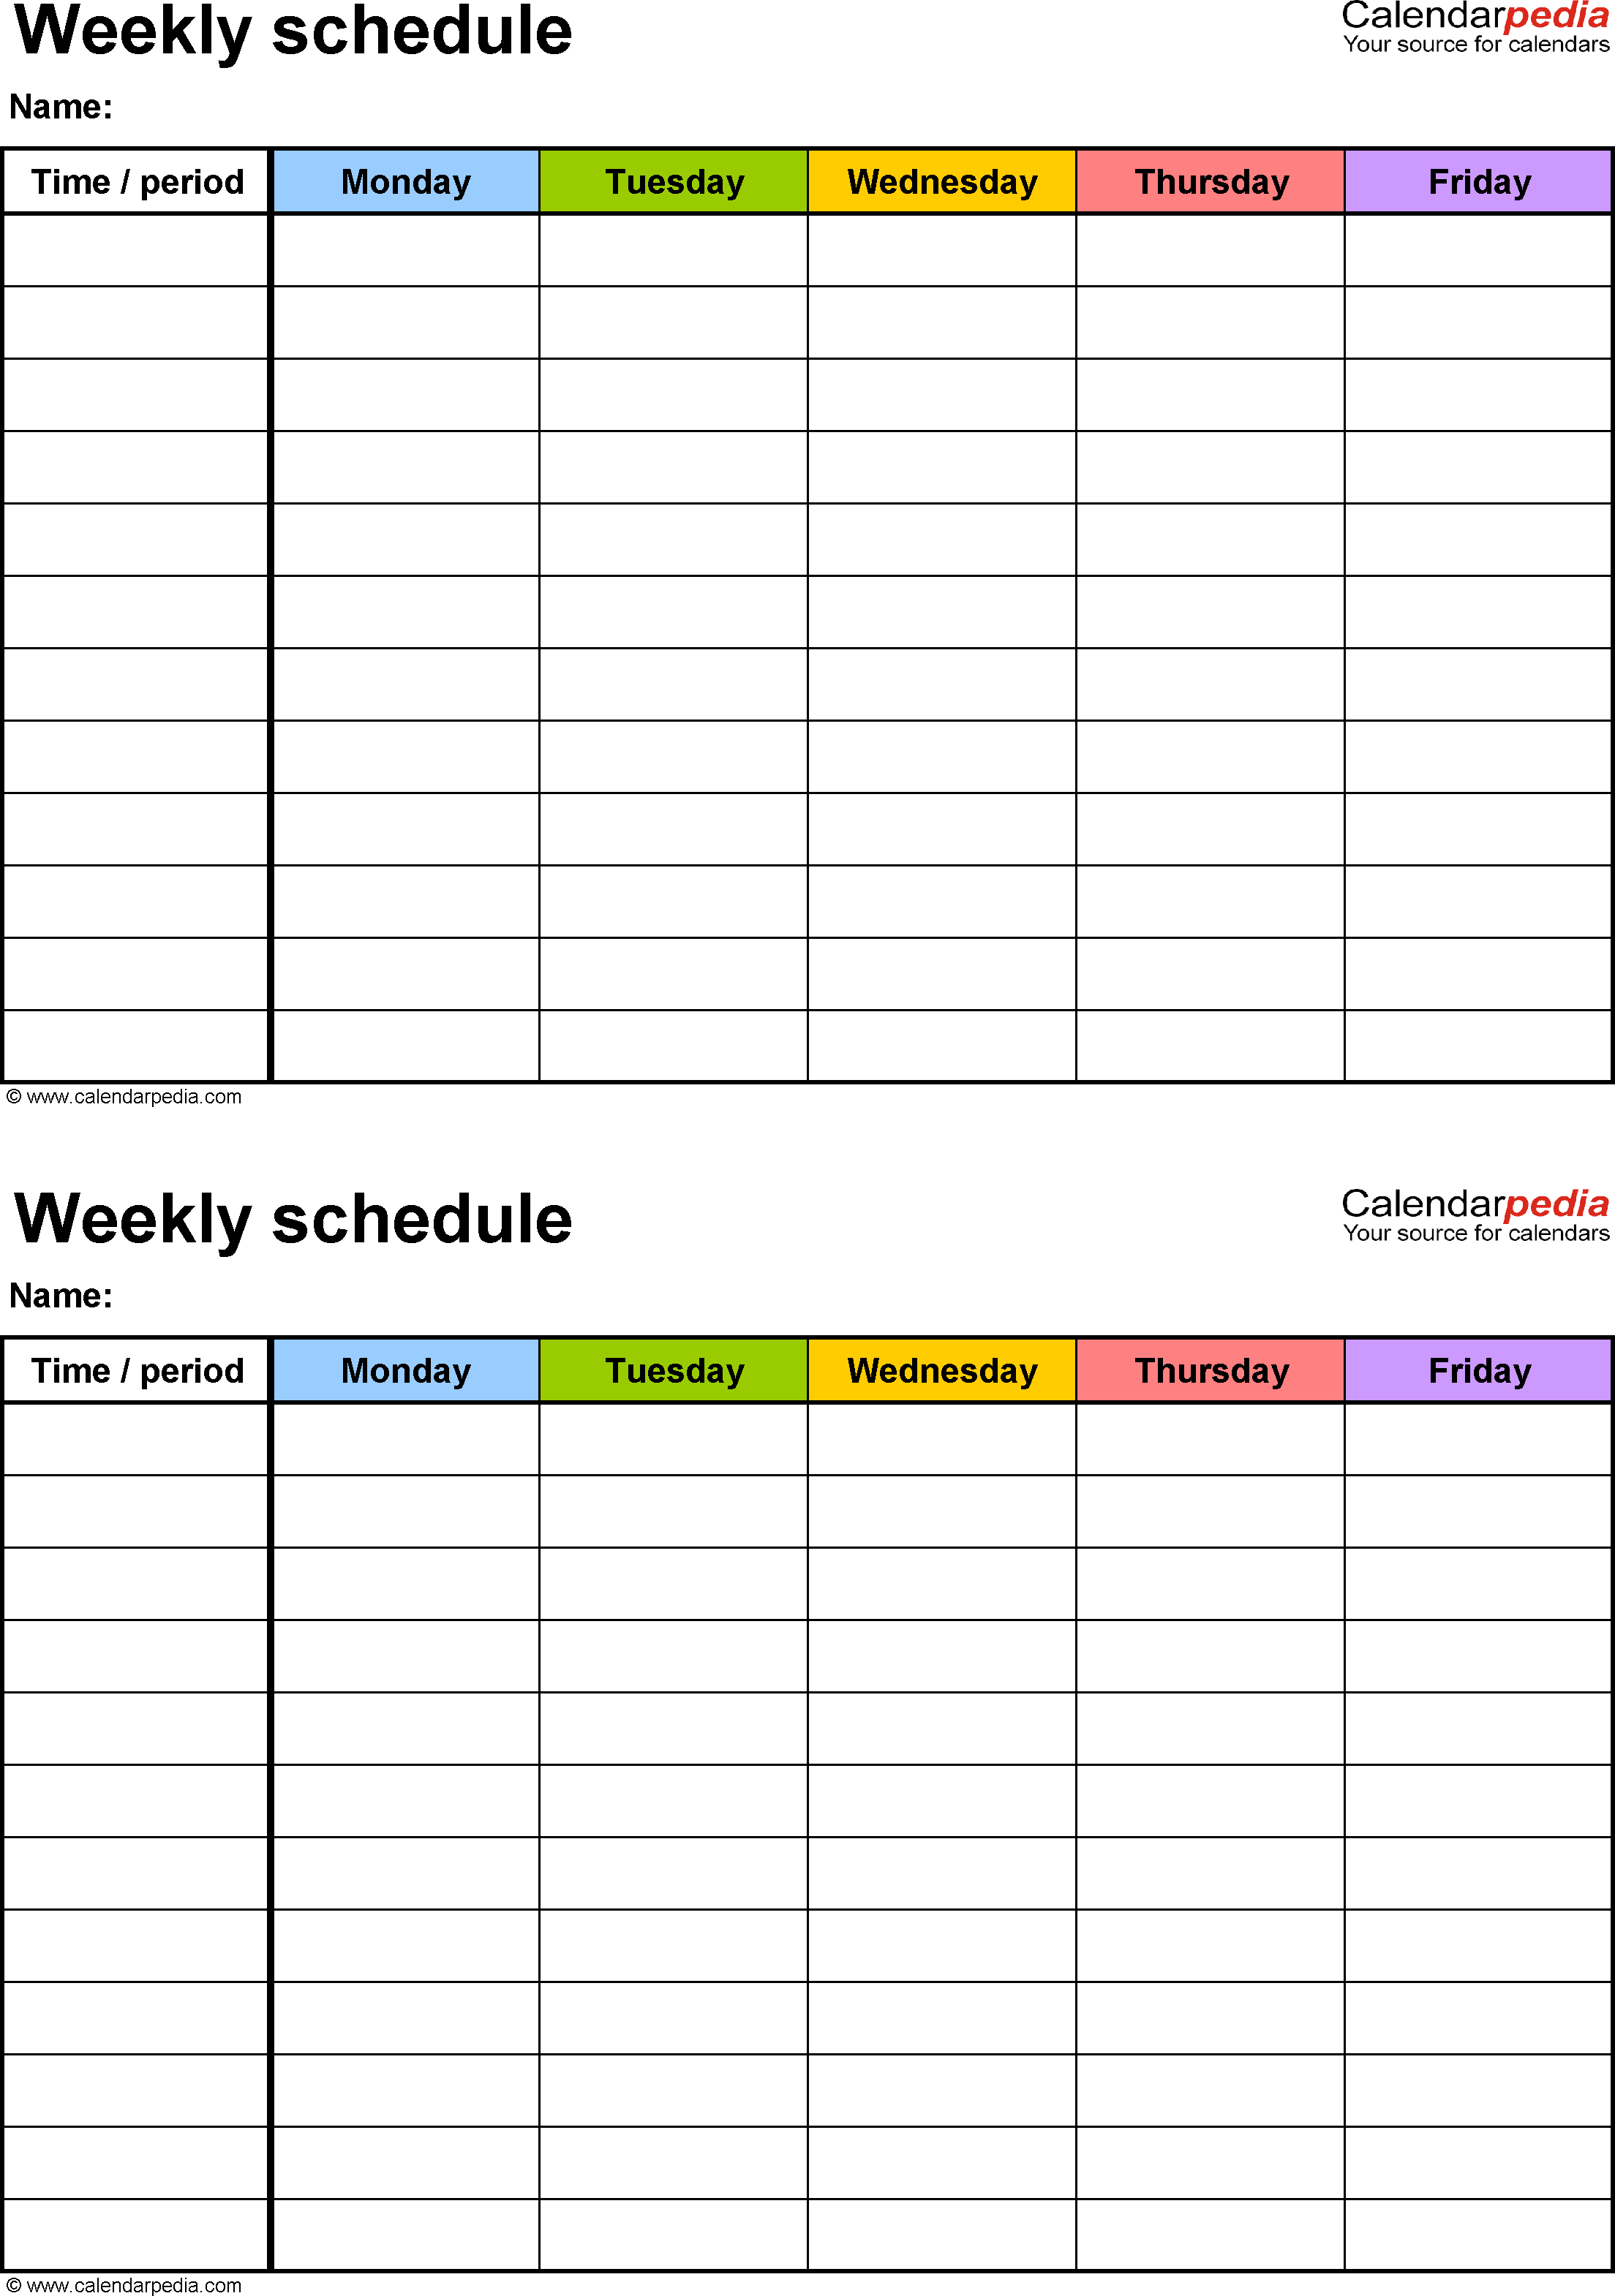 Weekly Schedule Template For Excel Version 3 2 Schedules On One